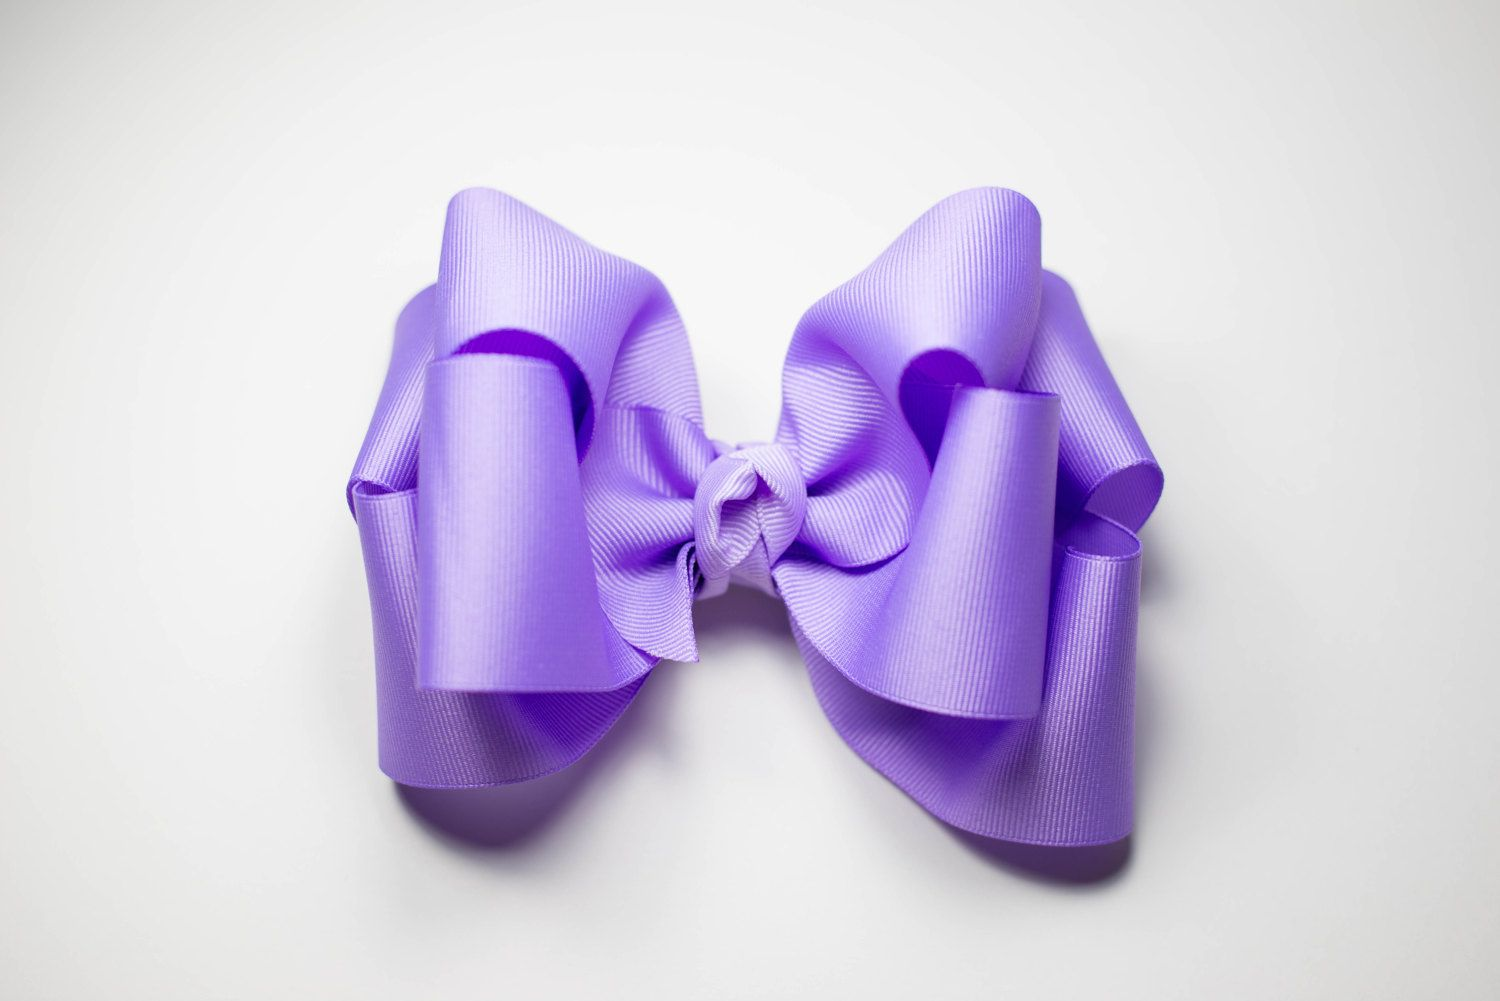 Double Stack Hair Bow- Purple 6 Inch Hair Bow- Large Girls Hair Bow- Boutique Hair Bows- Purple Bow For Toddler- Spring Hair Bow For Girls by NanabellesPretties on Etsy